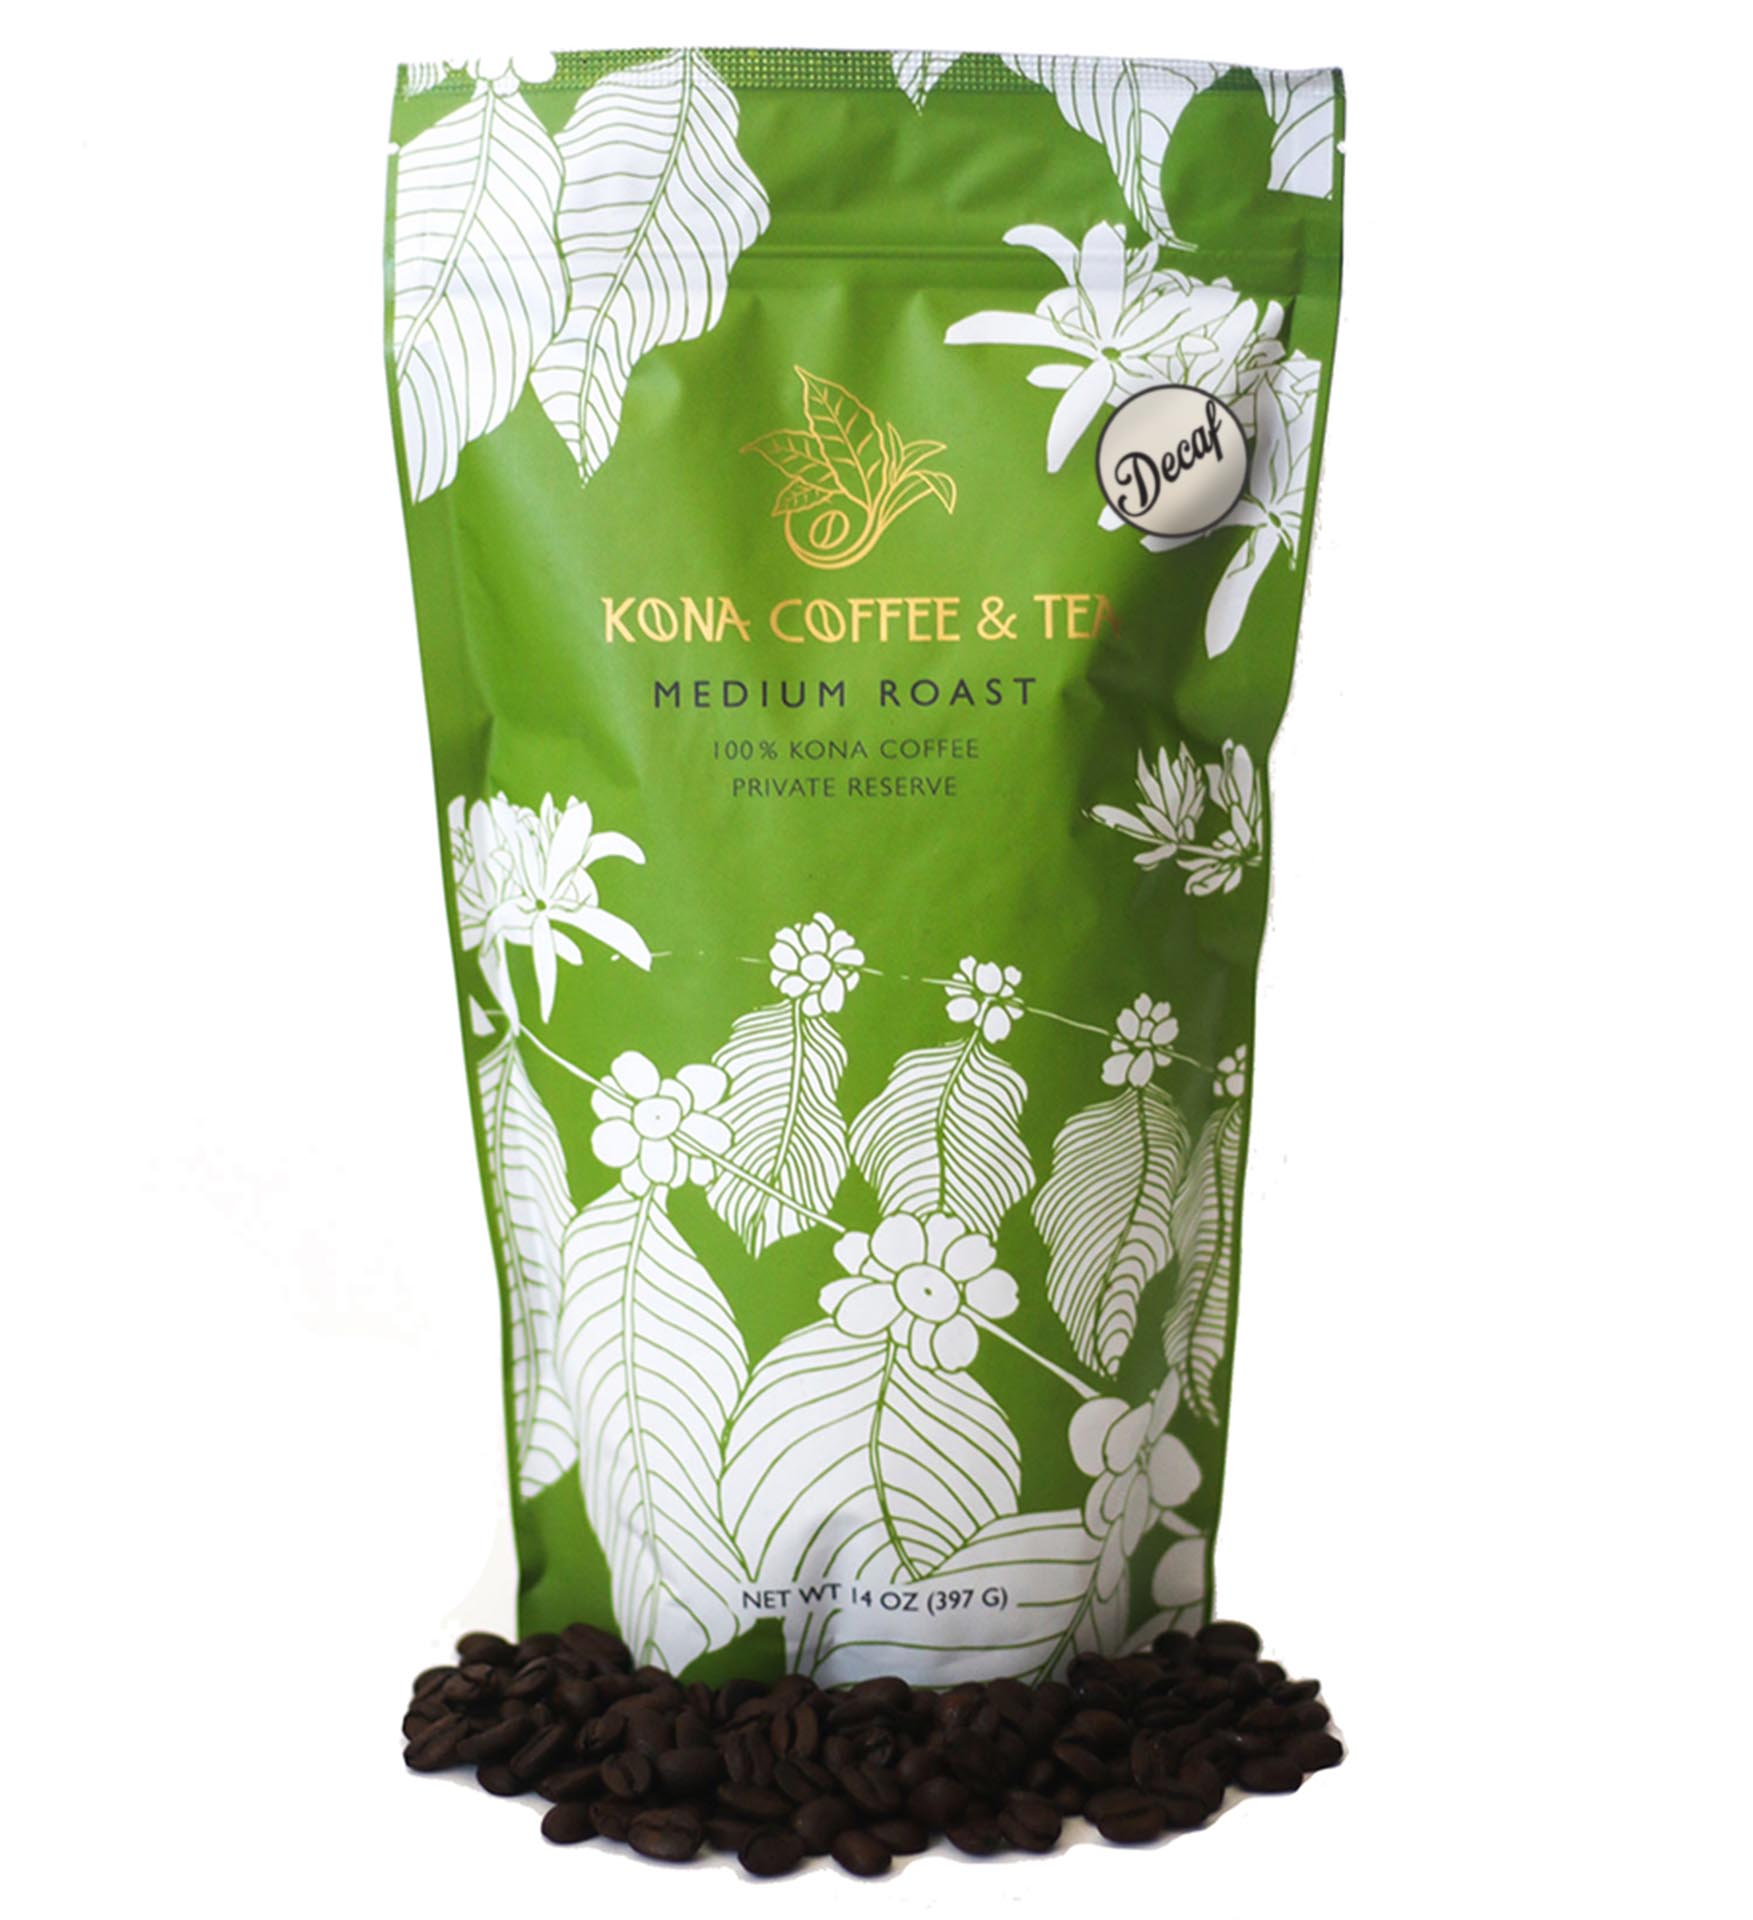 Decaf 100% Kona Coffee